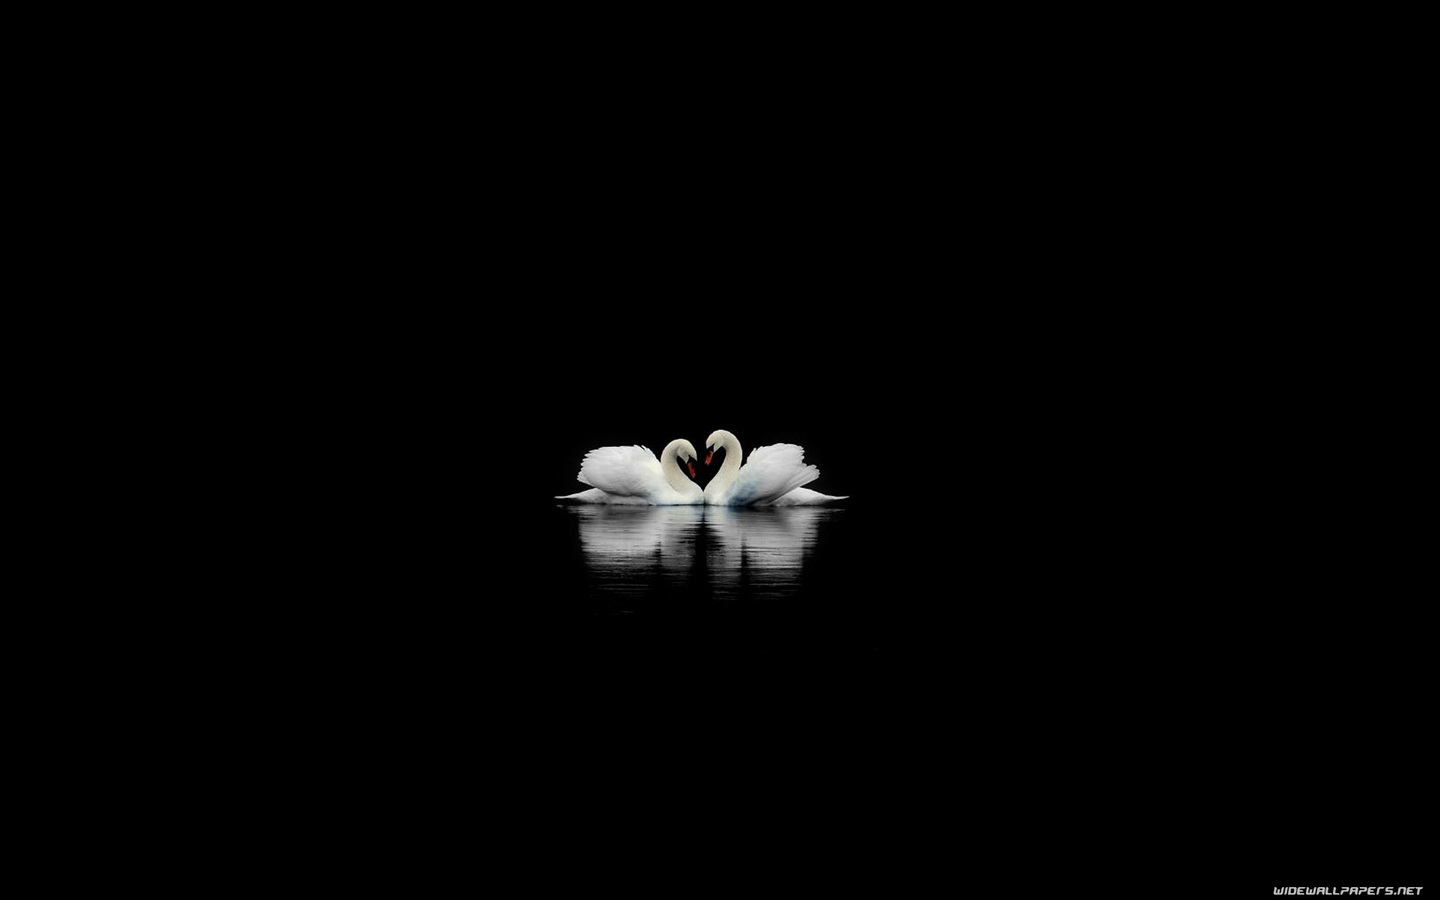 Black Images Swans On A Black Lake Wallpaper Hd Wallpaper And Background Photos